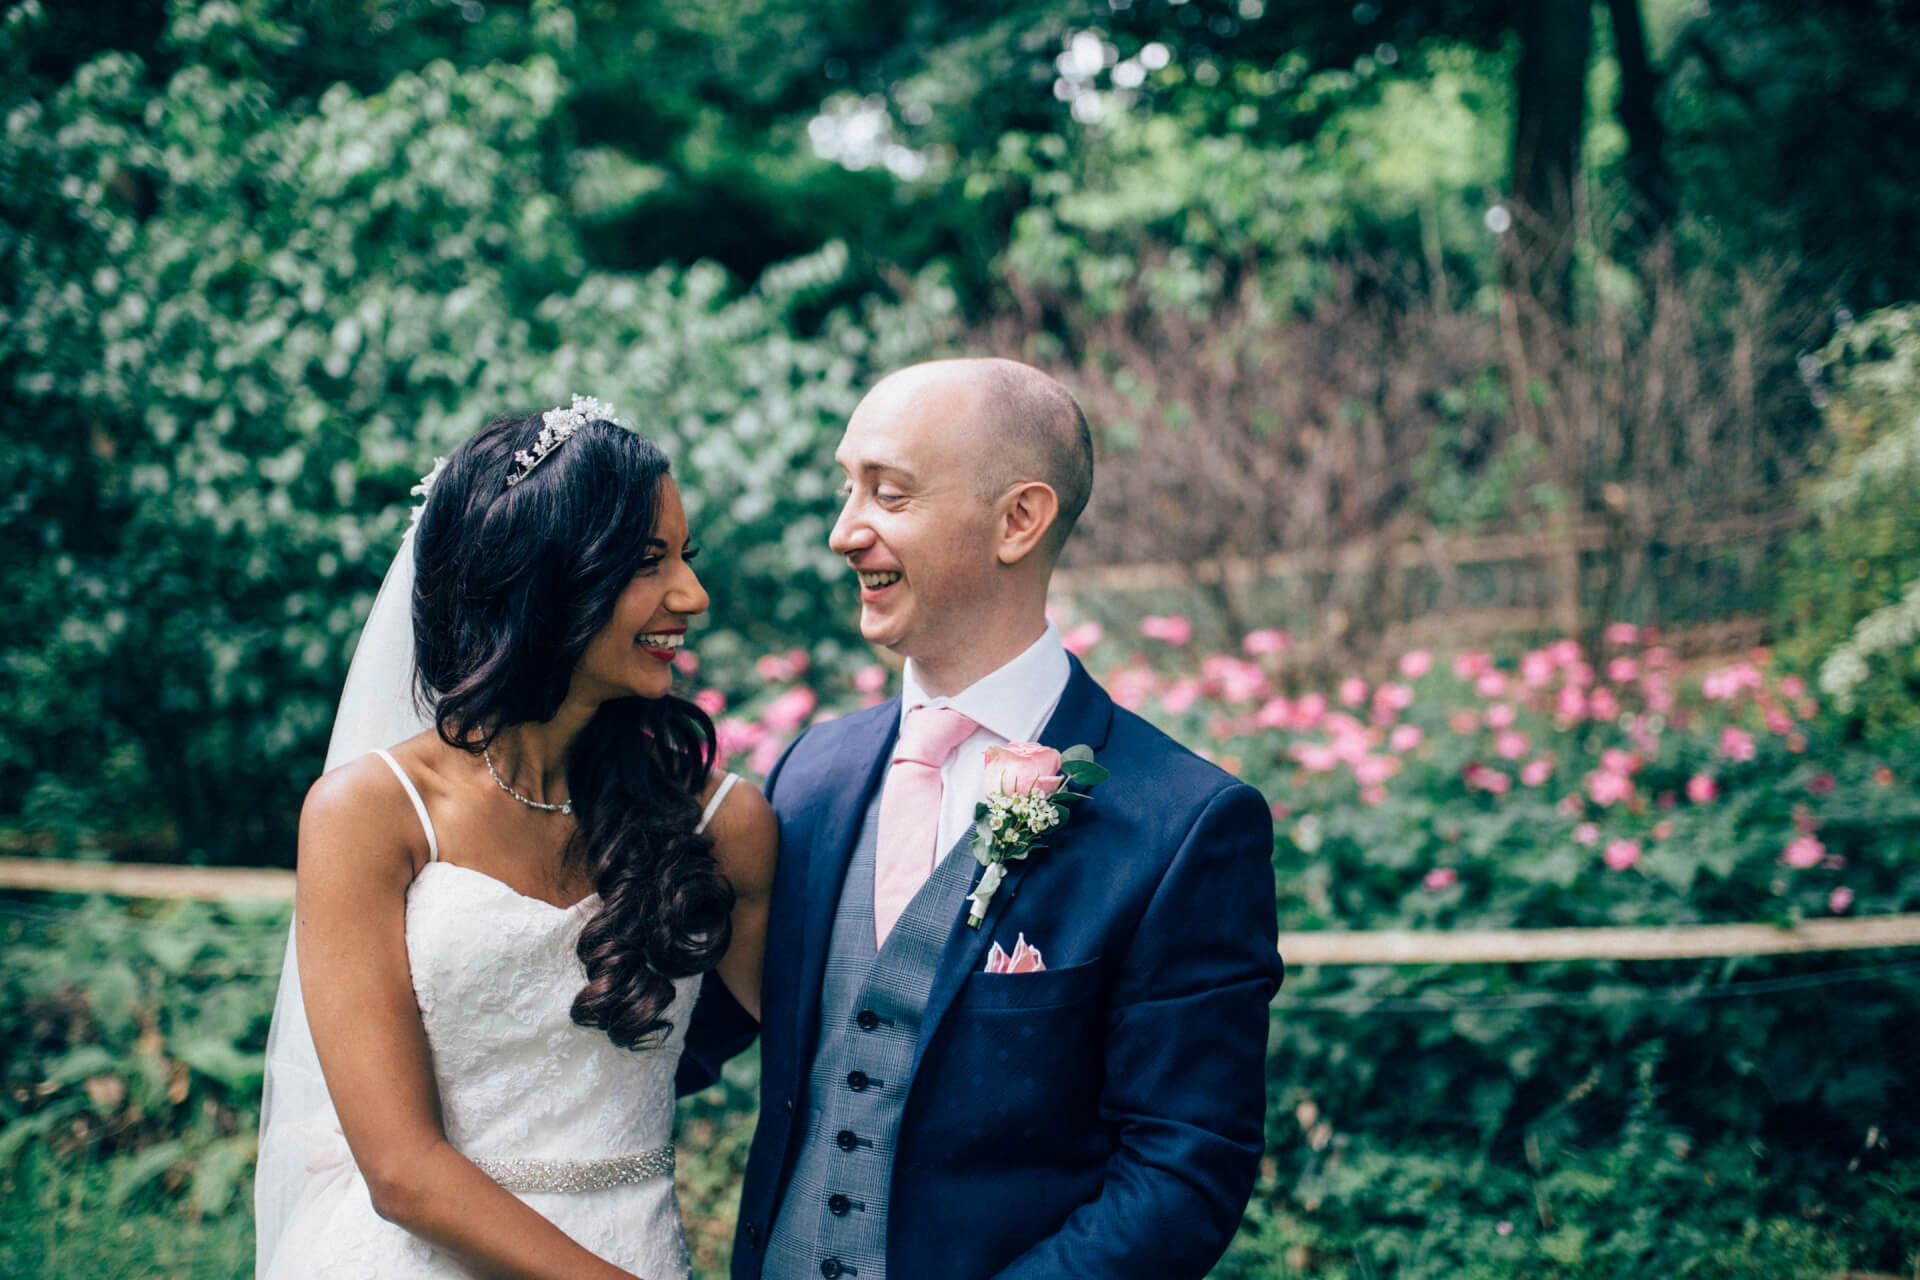 Fun and laid back wedding at Pembroke